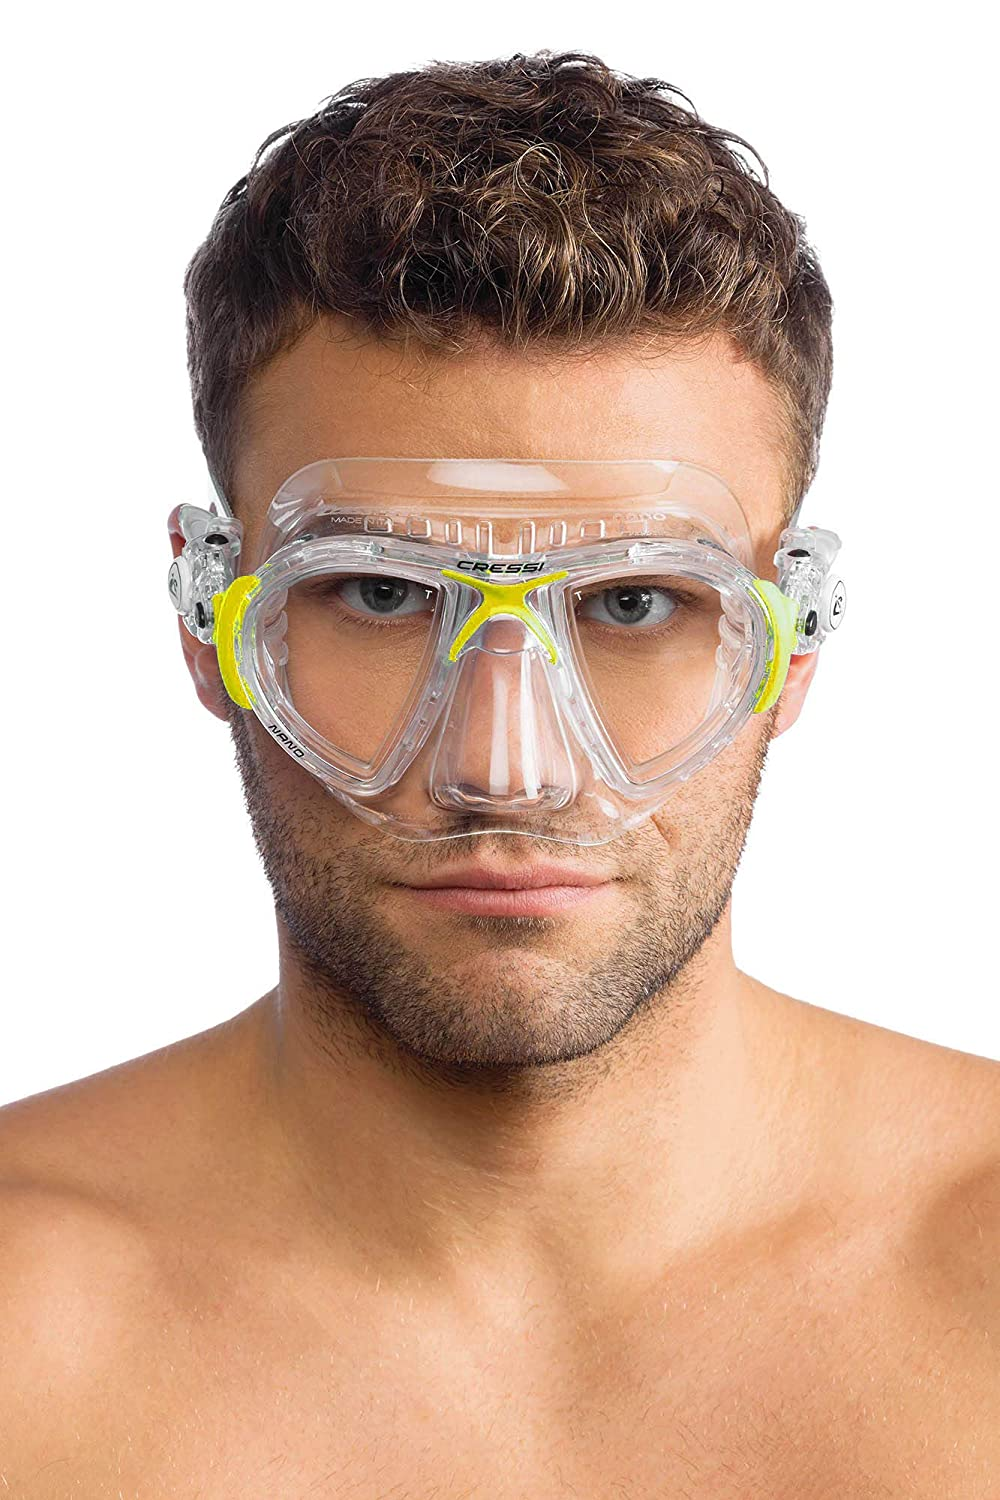 Soft SiliconeCrystal or Black Professional Scuba and Free Diving Mask Cressi Nano